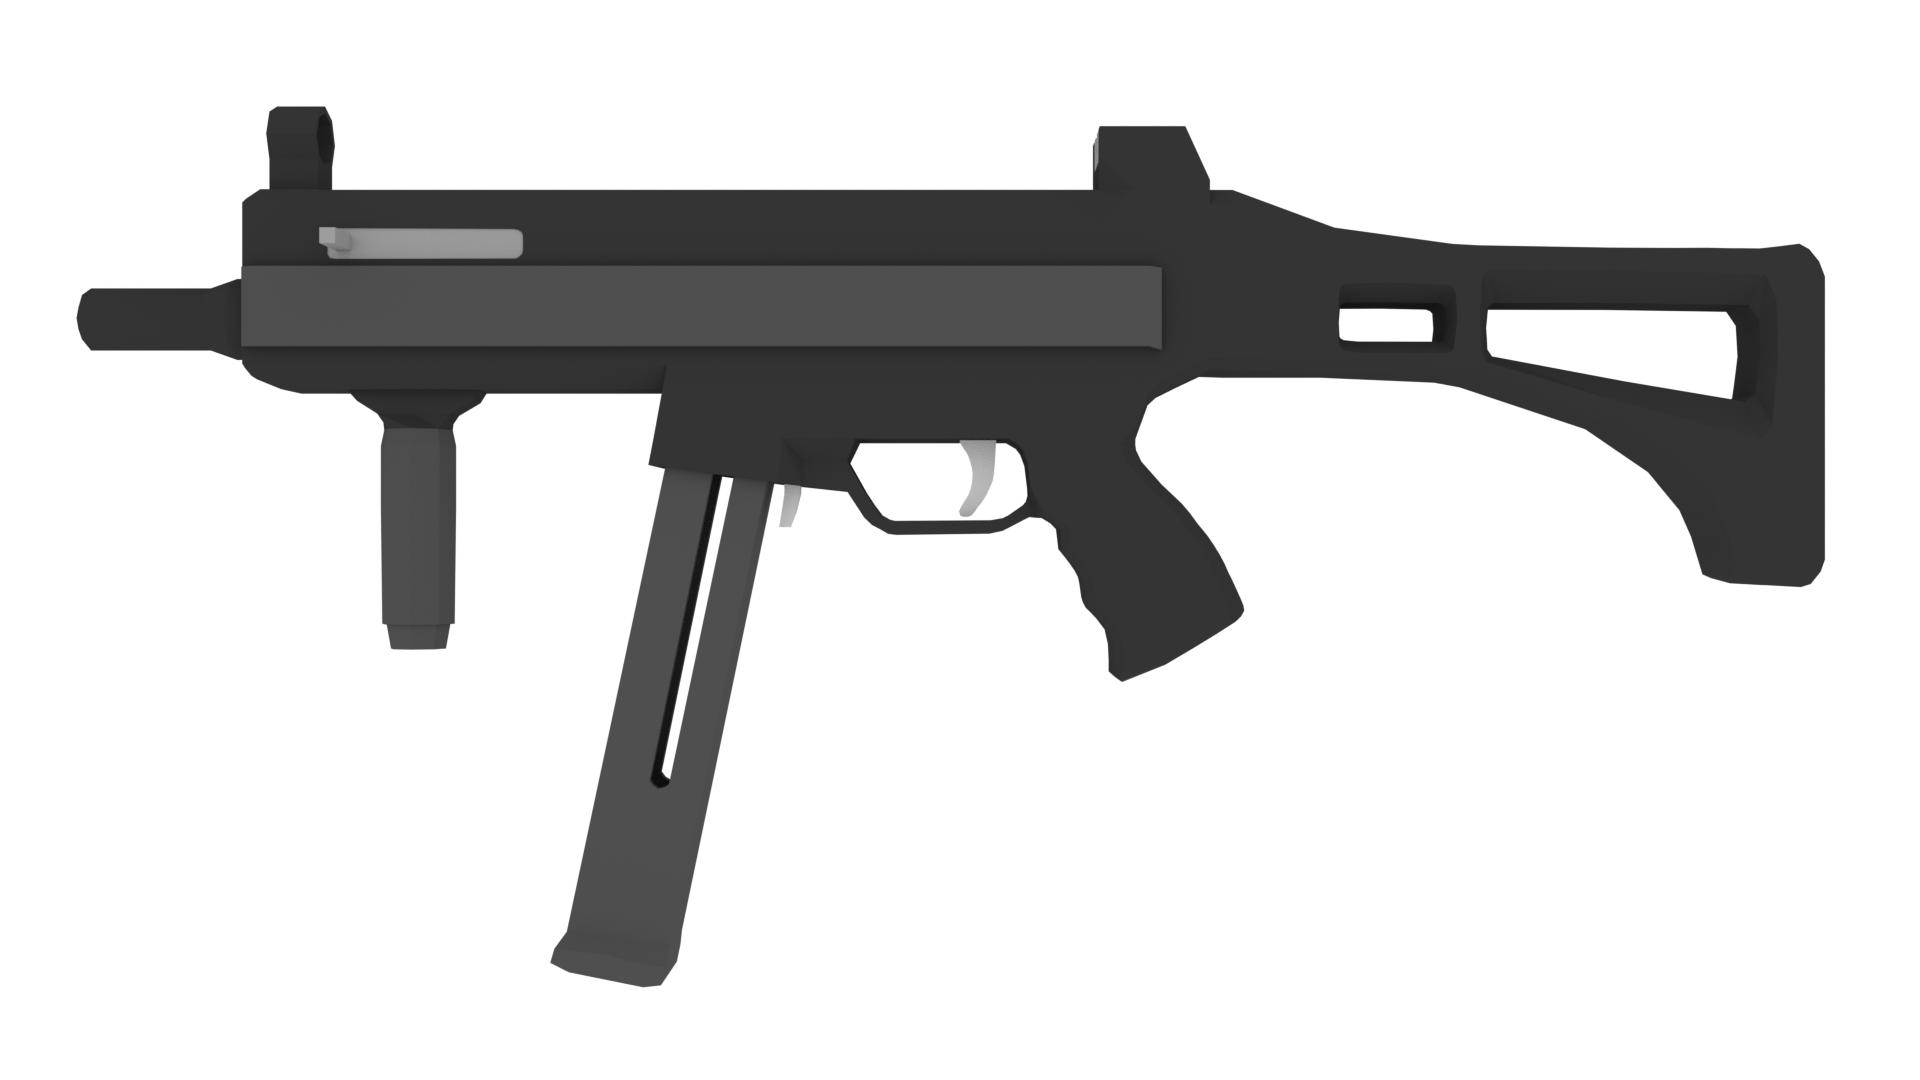 Low poly arms pack. Guns clipart fps